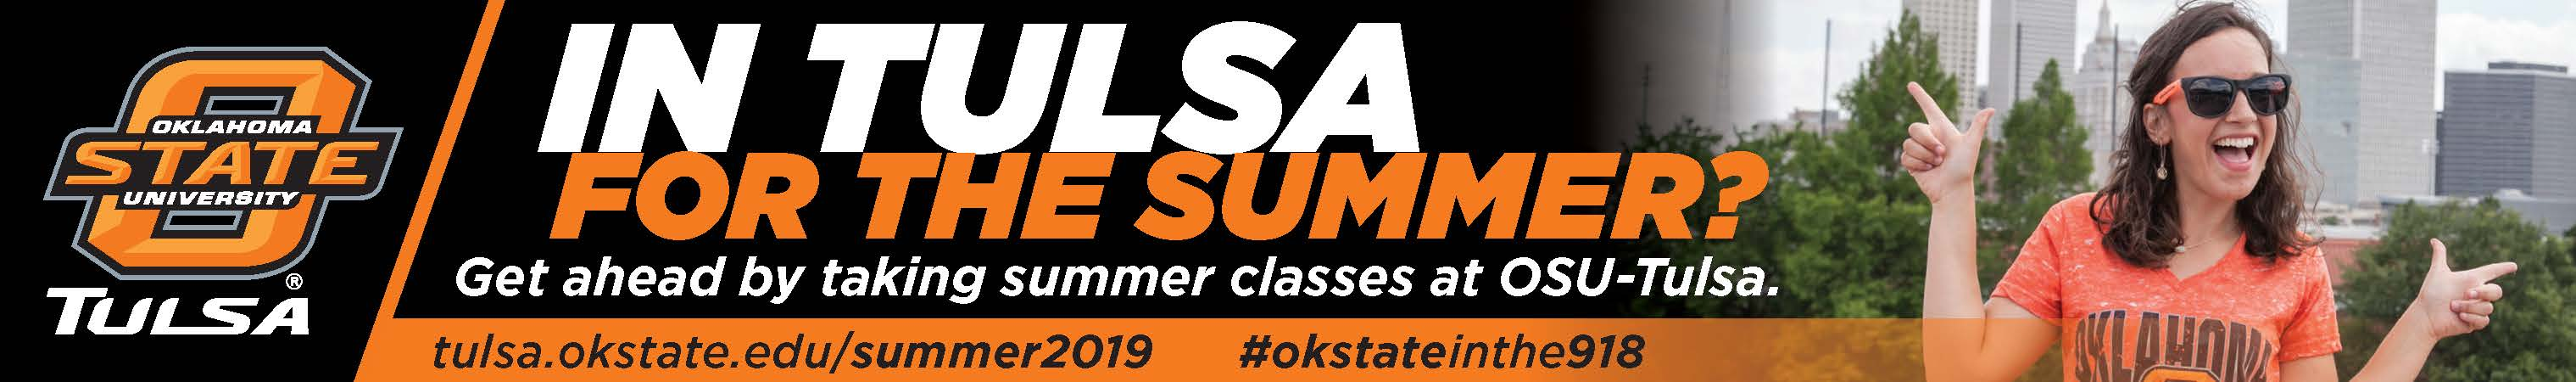 In Tulsa for the summer? Get ahead by taking summer classes at OSU-Tulsa.